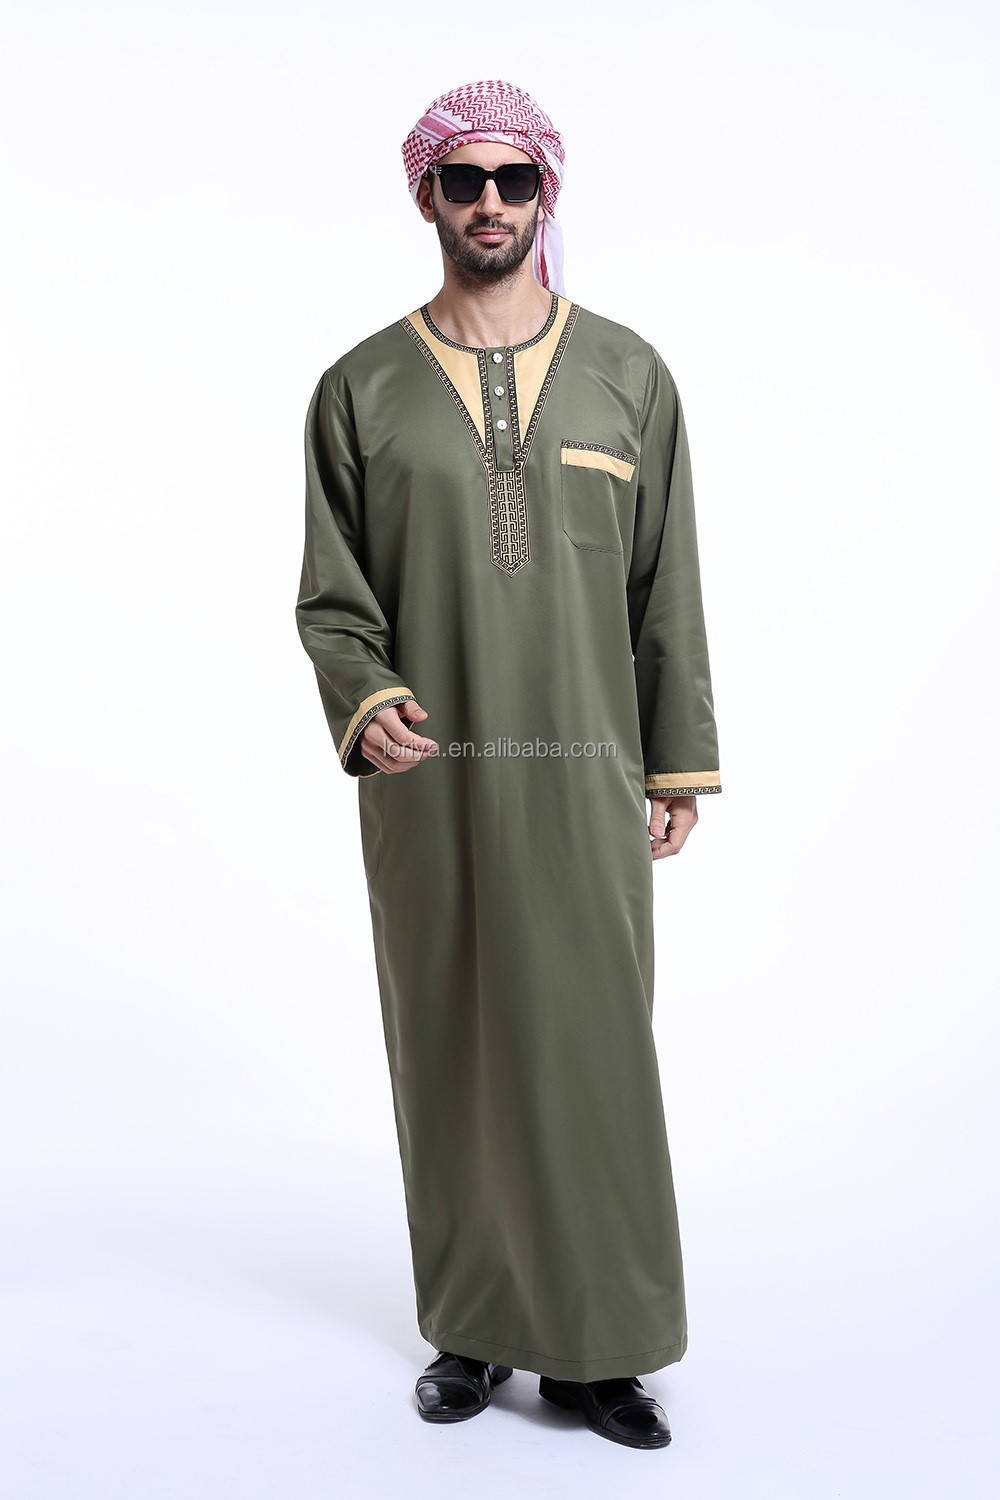 High quality men's arab design men's abaya